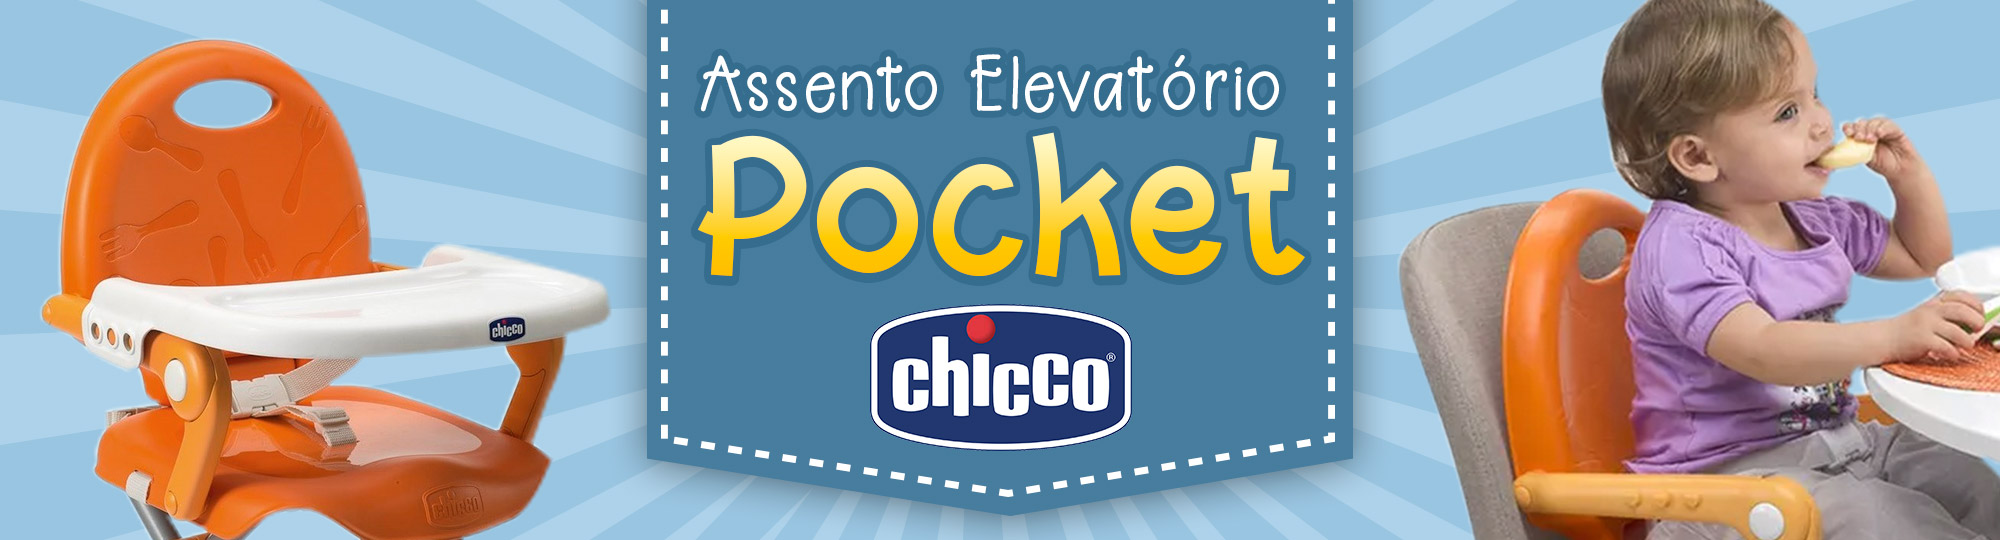 Pocket Chicco